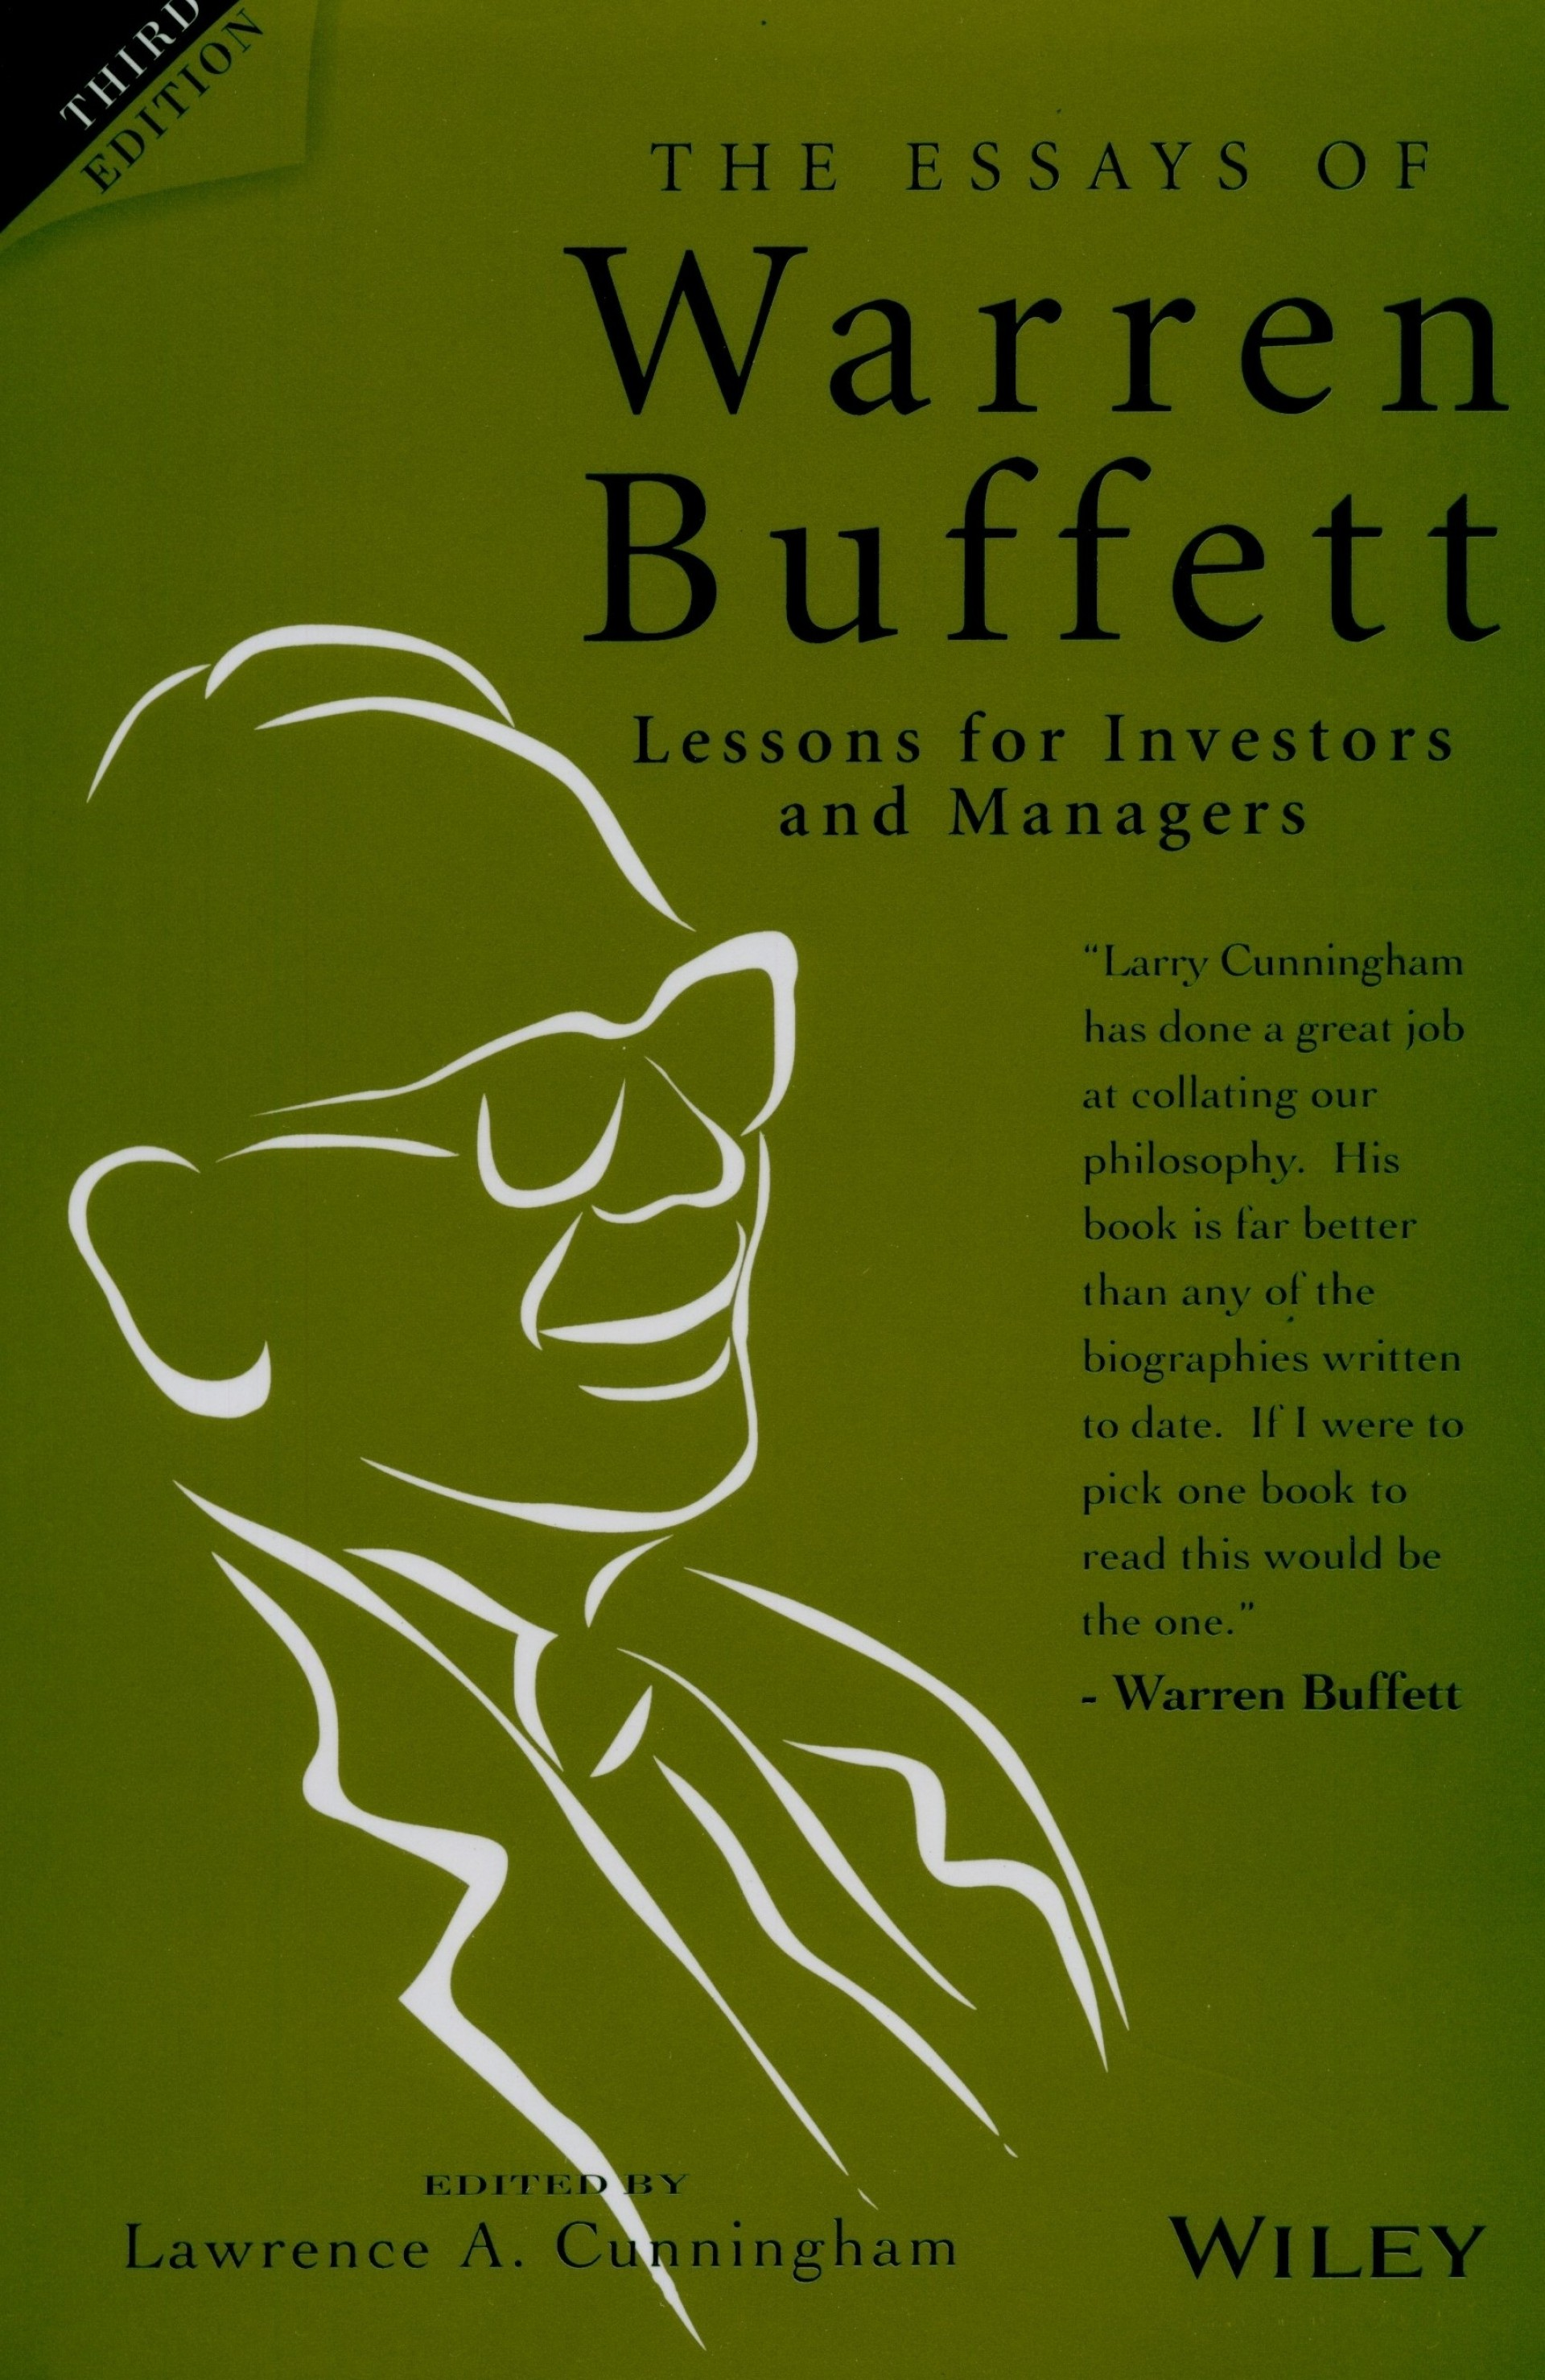 013 Essay Example The Essays Of Warren Buffett Lessons For Investors And Managers Original Striking 4th Edition Free Pdf 1920